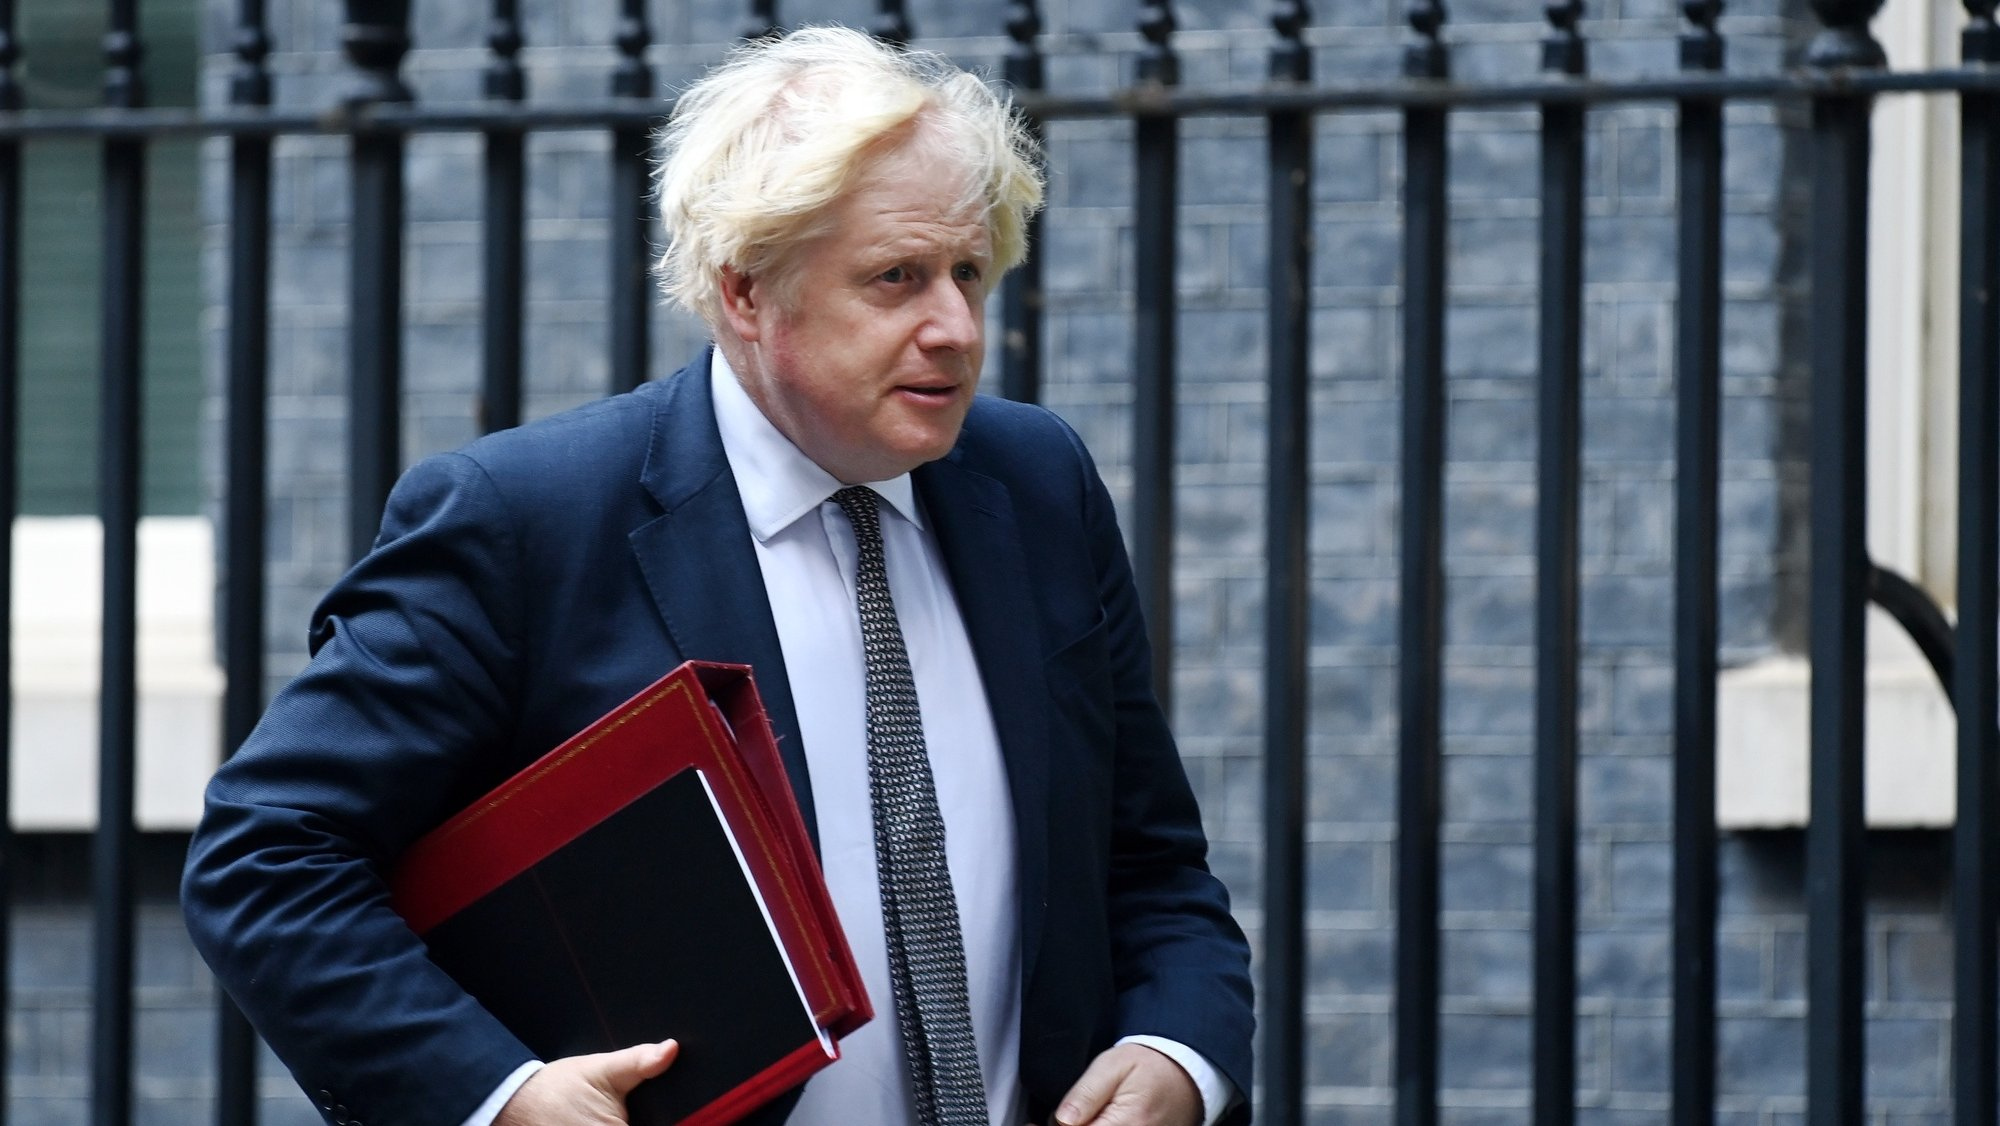 epa09427556 British Prime Minister Boris Johnson departs 10 Downing Street in London, Britain, 24 August 2021. Johnson is set to push US President Biden for a troop withdrawal extension in Afghanistan during an emergency G7 virtual summit meeting scheduled for 24 August.  EPA/ANDY RAIN